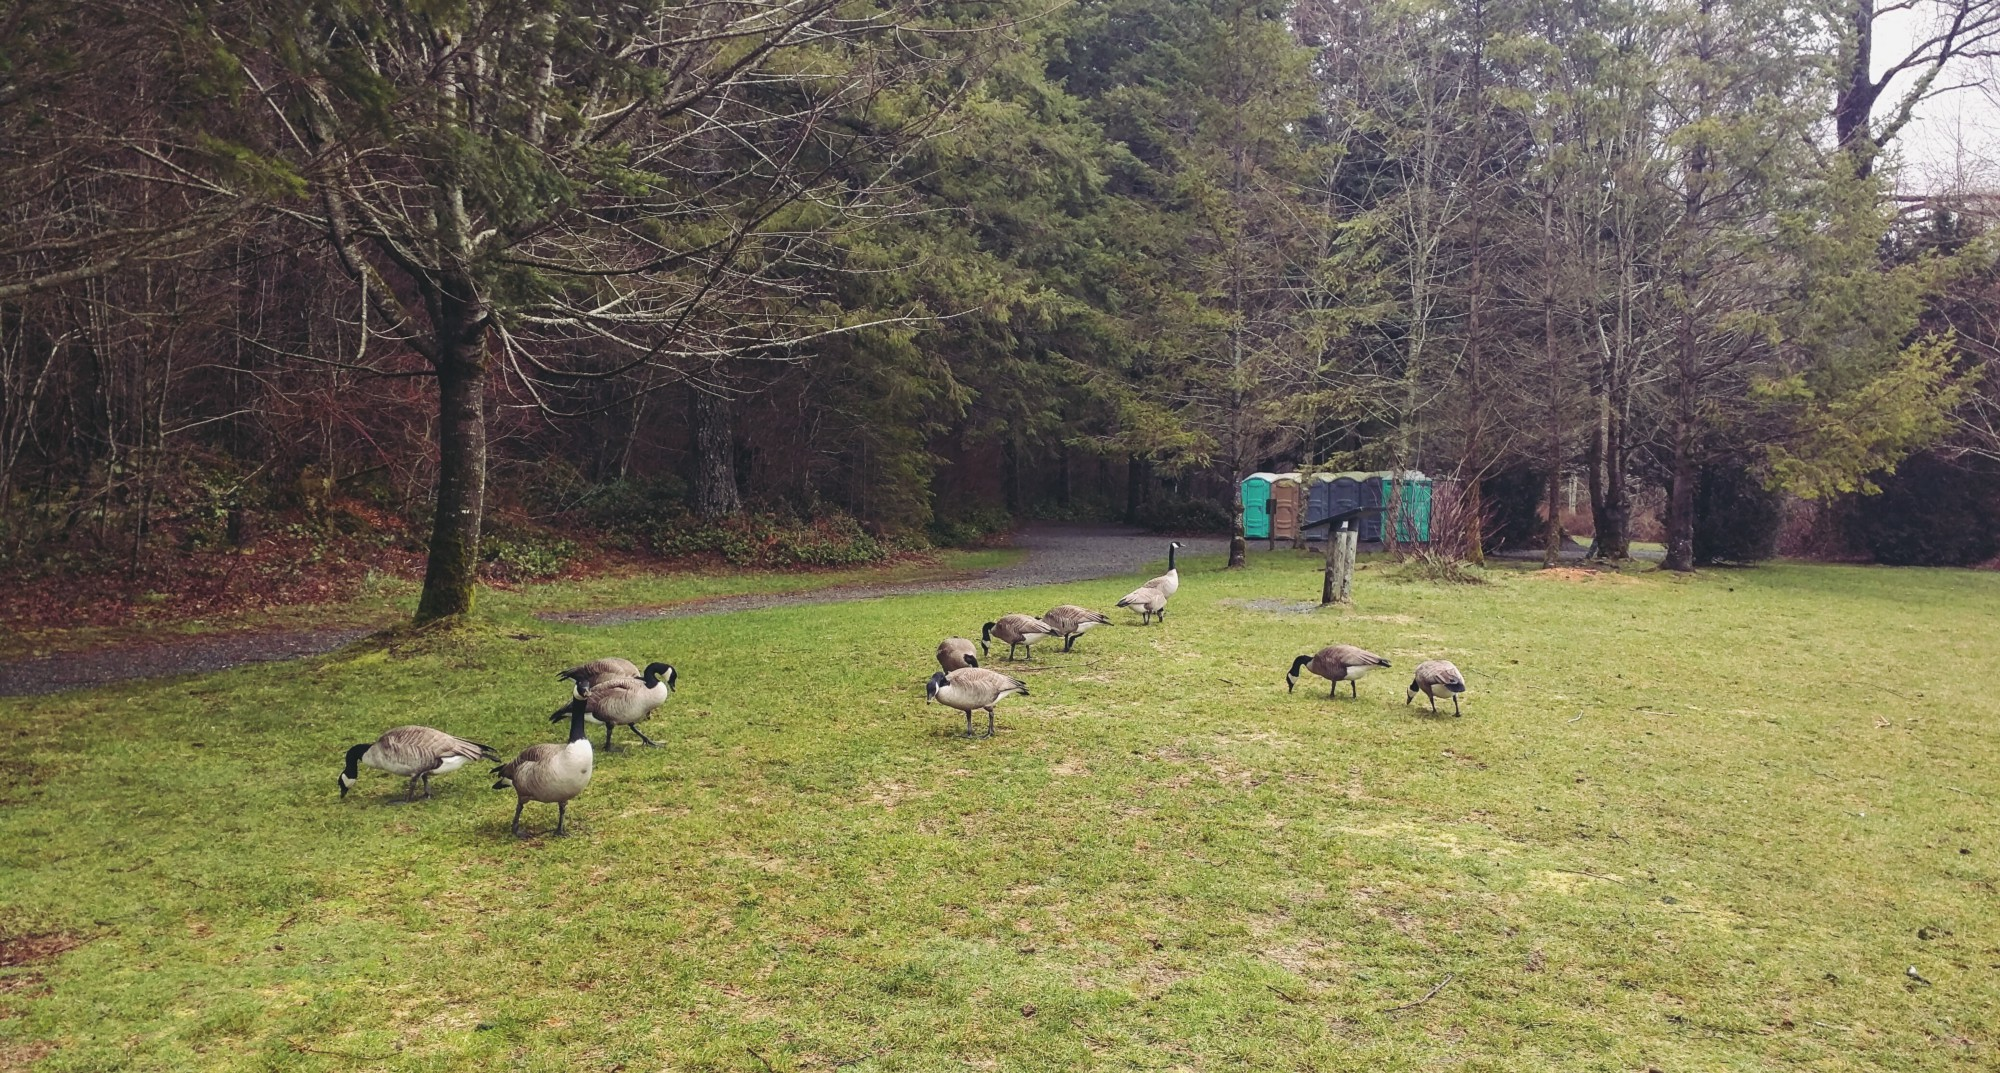 The geese didn't mind us too much